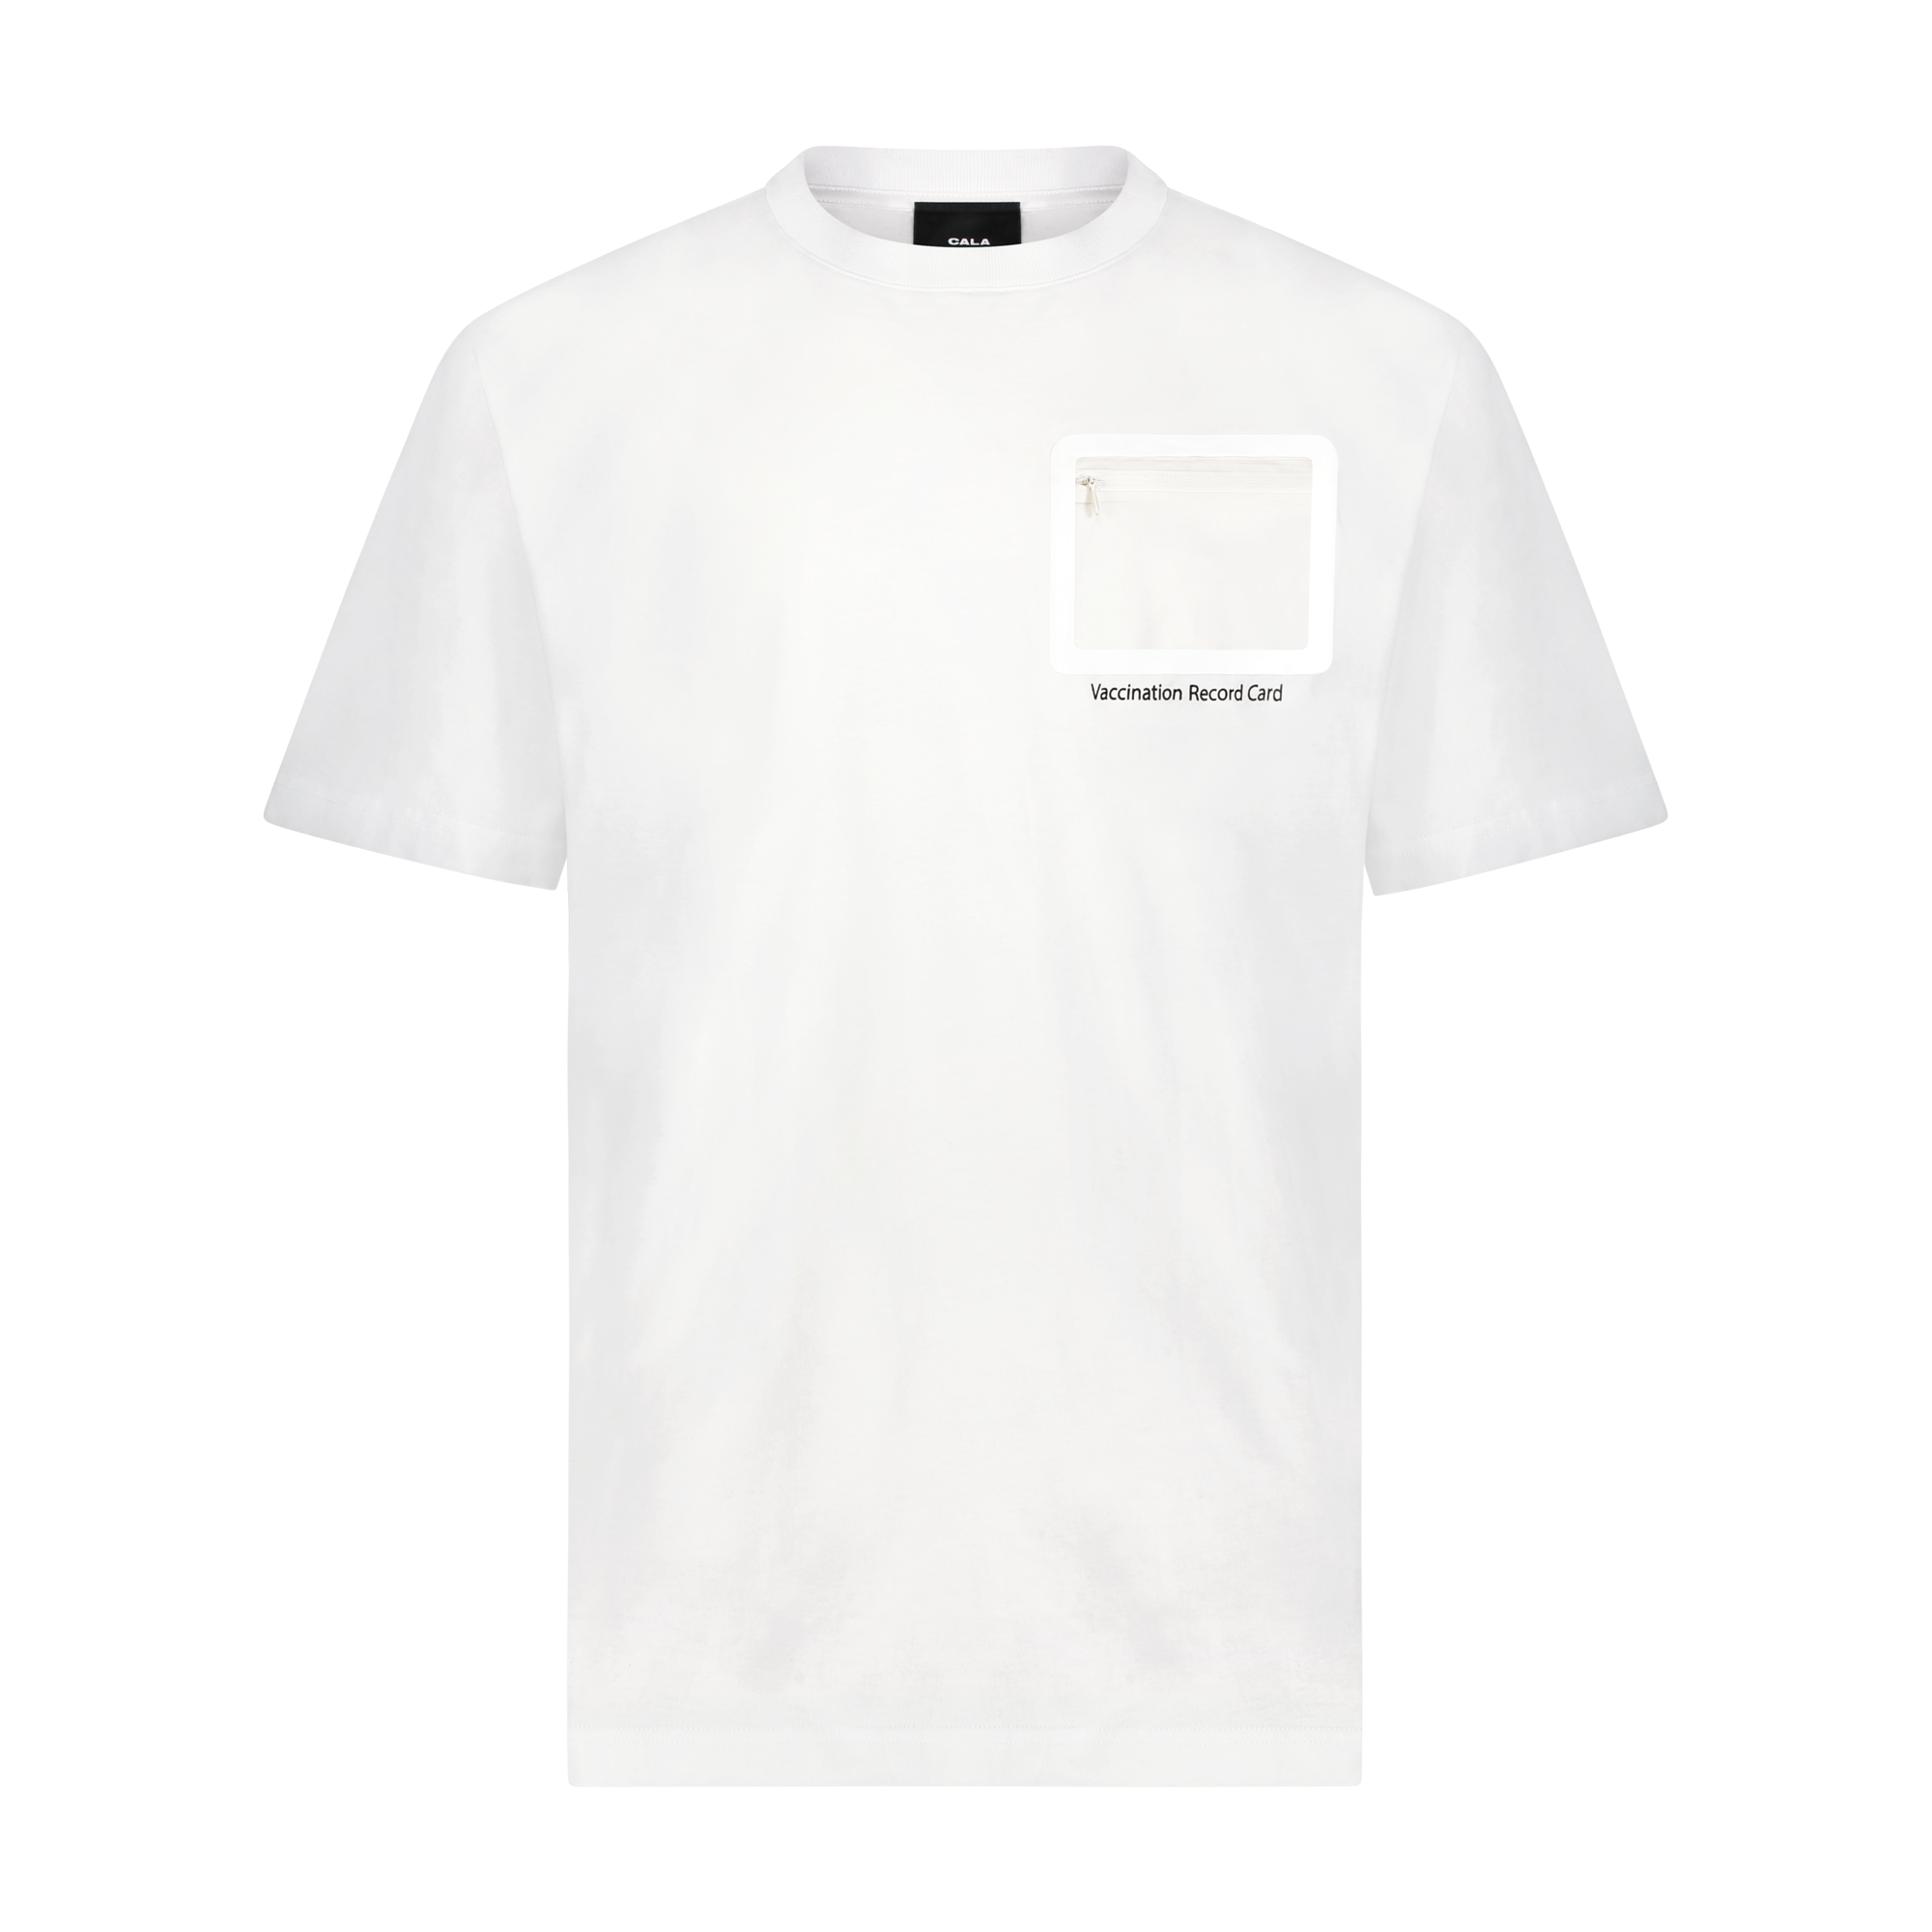 Vaccination Record Card Tee with no card inside.